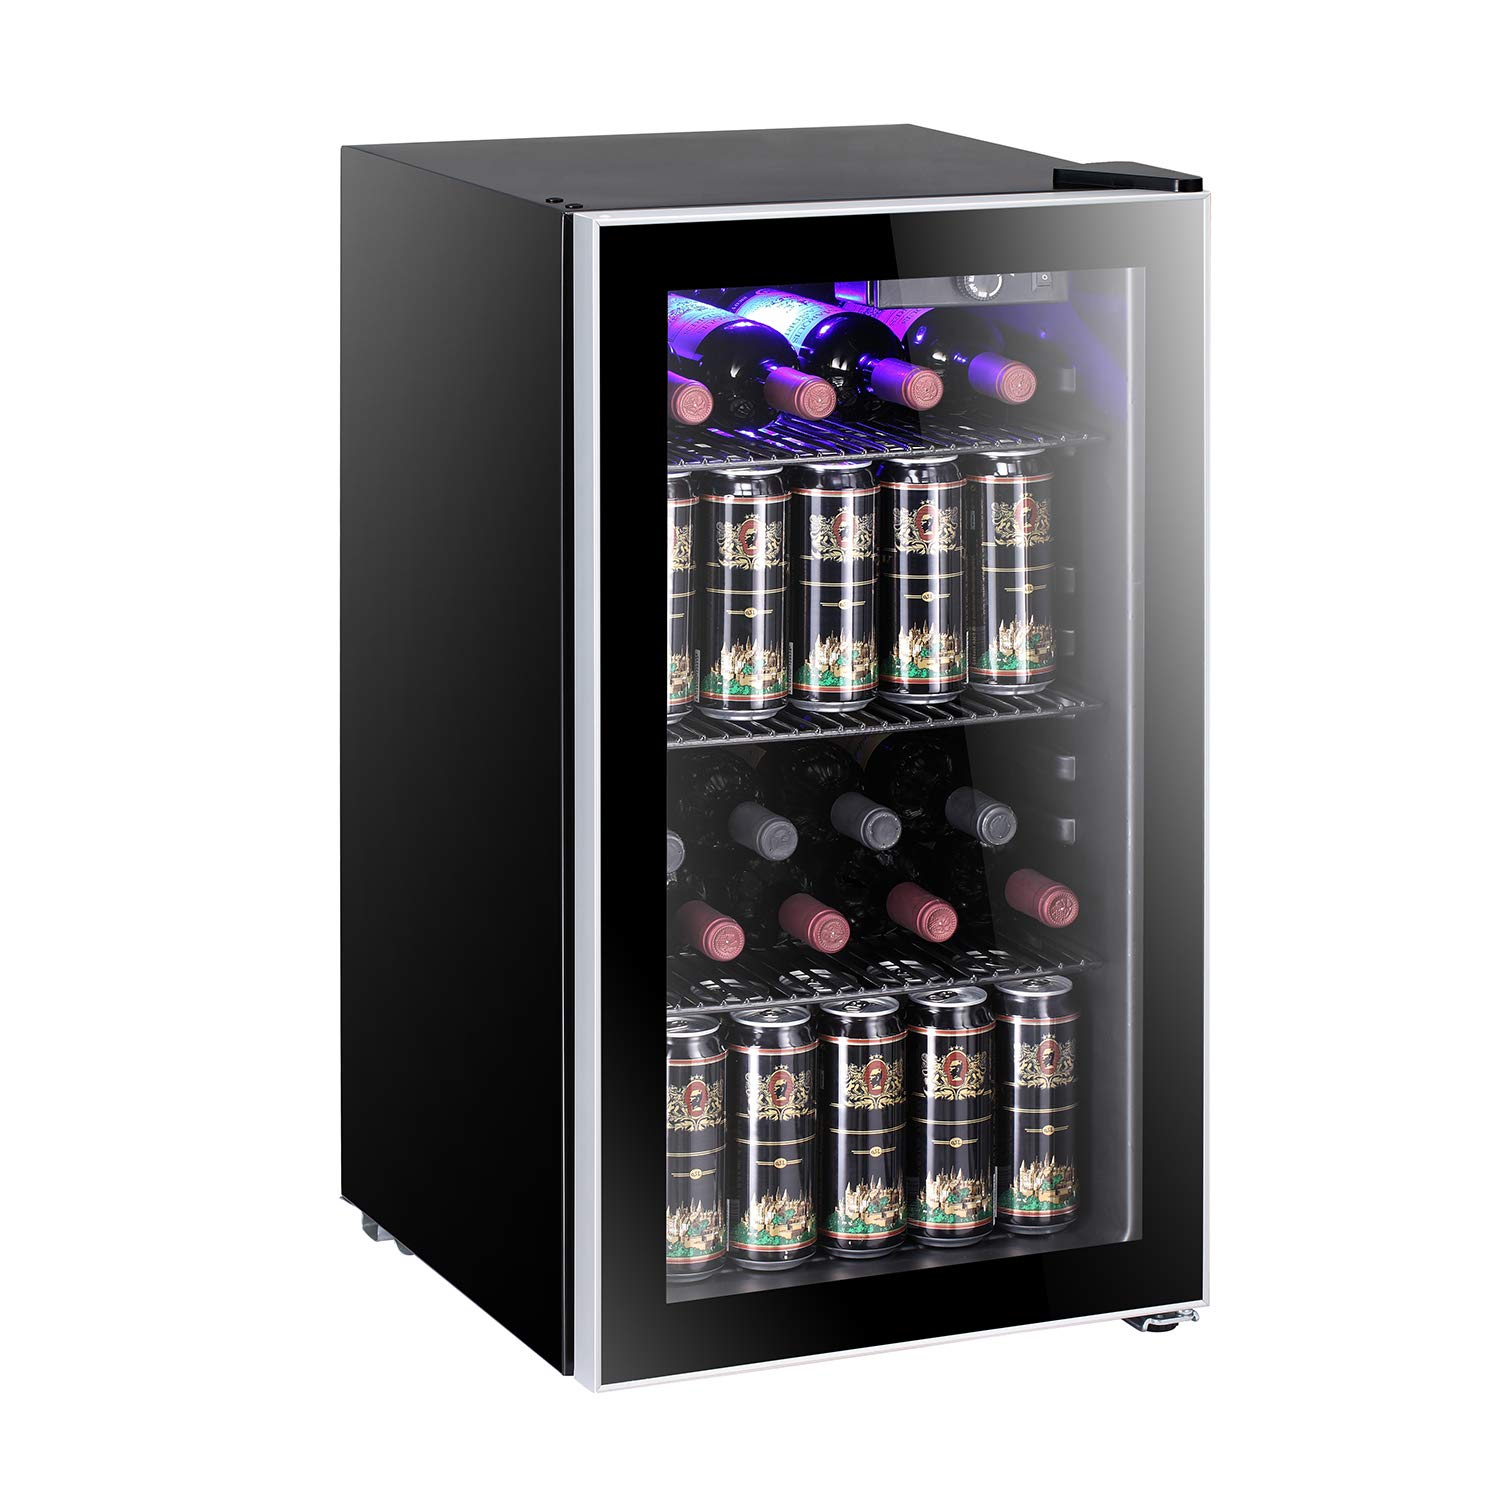 26 Bottle Wine Cooler - Compressor Wine Cellar - Counter Top Wine Chiller- Cabinet Refrigerator with Glass Door (26 Bottle)